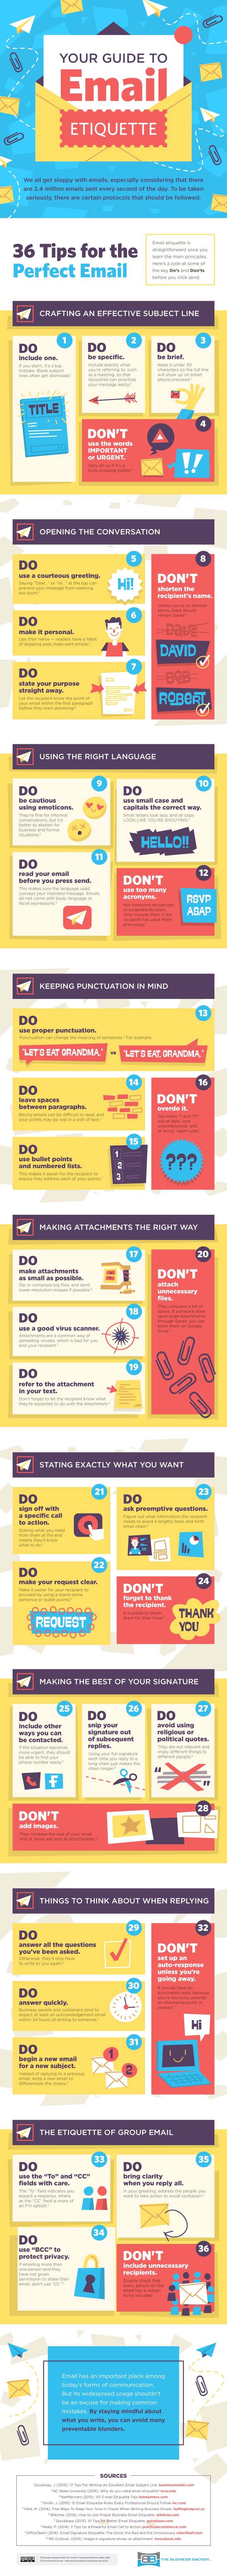 Your 2017 Guide To Email Etiquette [Infographic] | Social Media Today